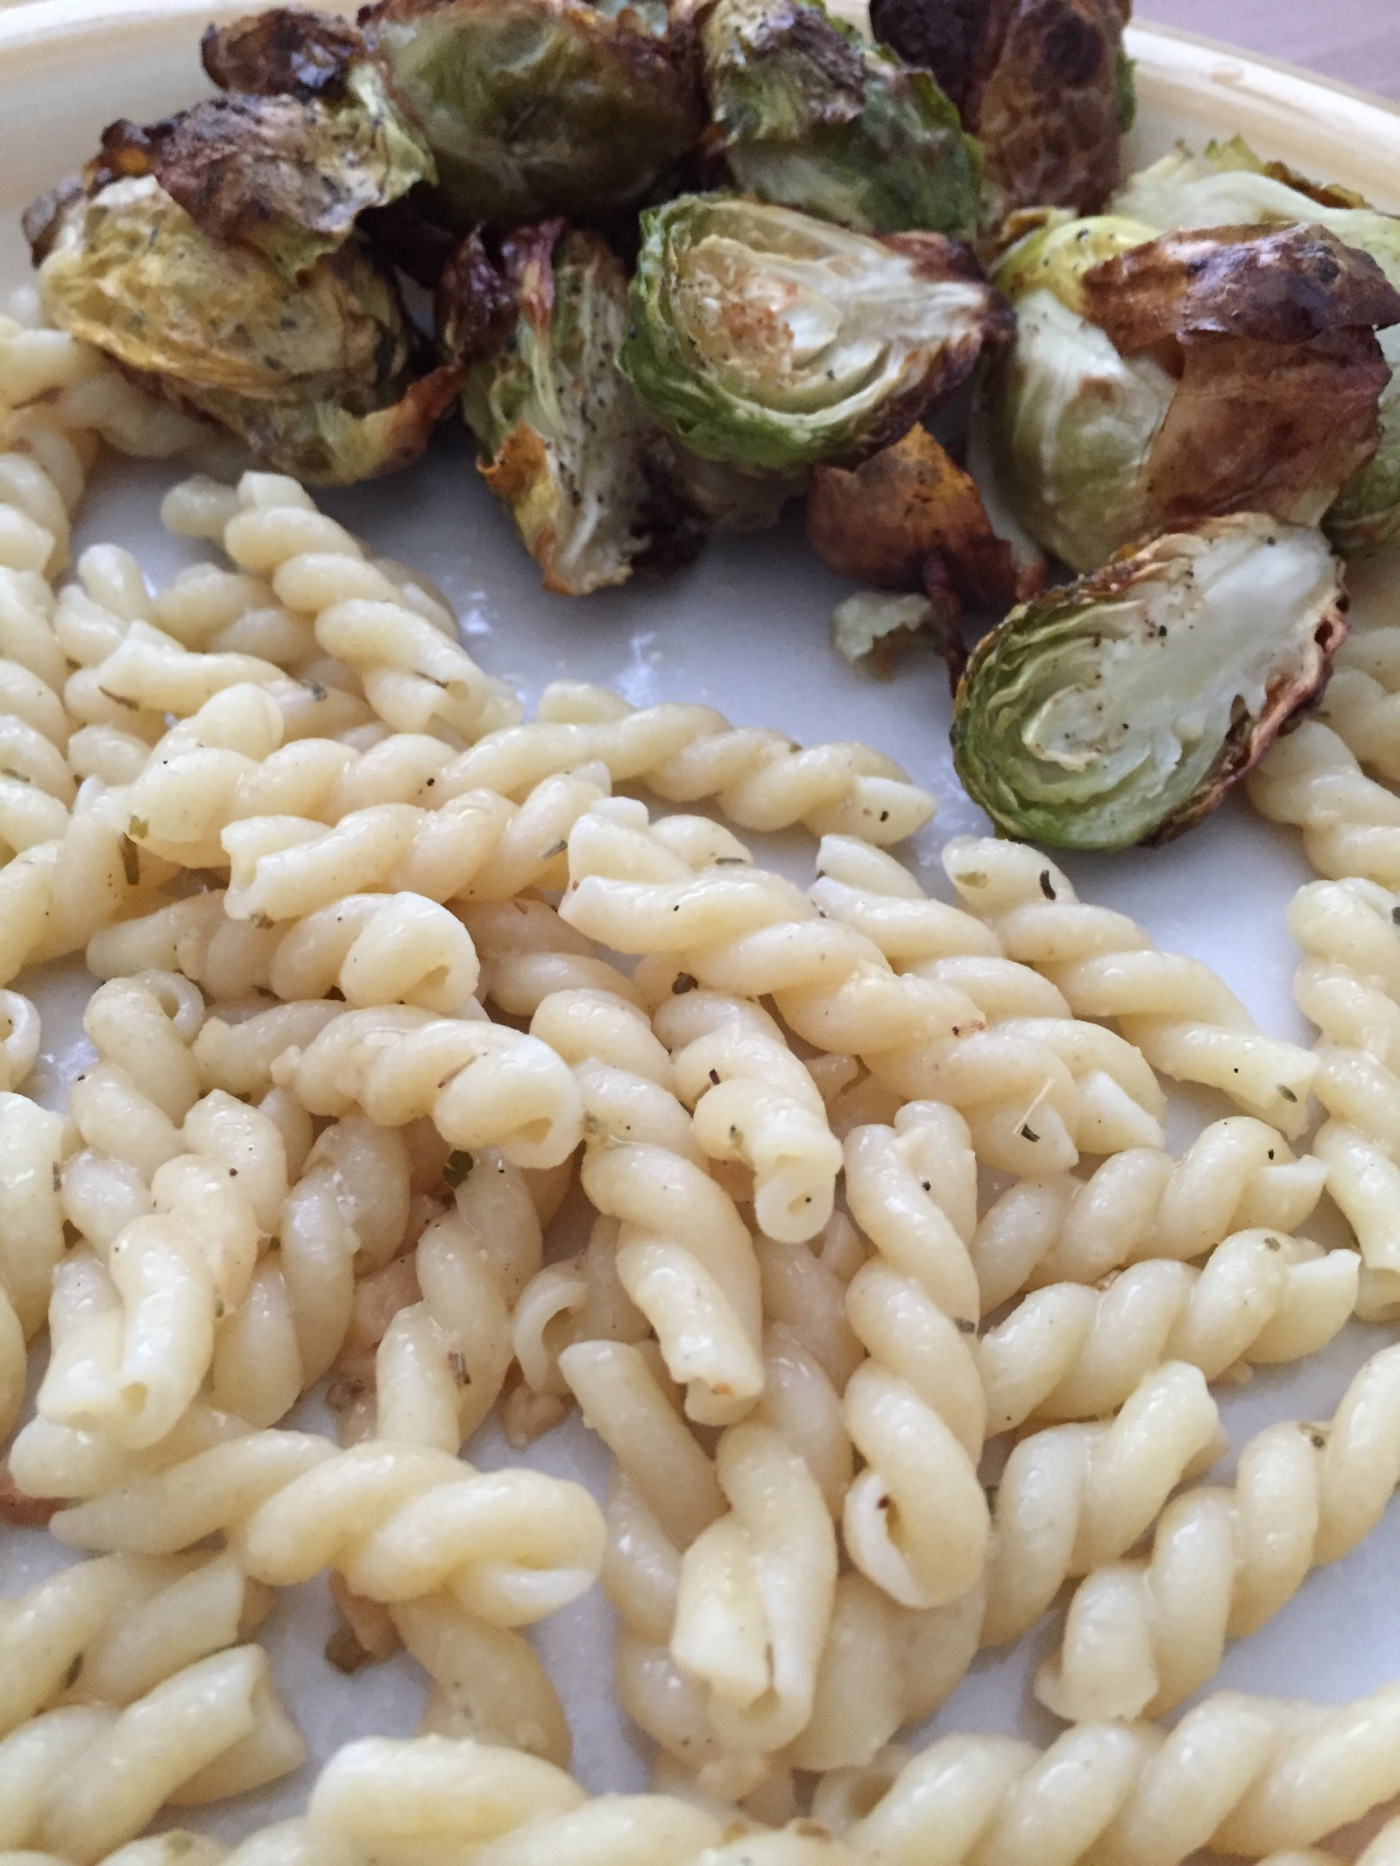 Oven Roasted Brussel Sprouts with Garlic Butter Noddles